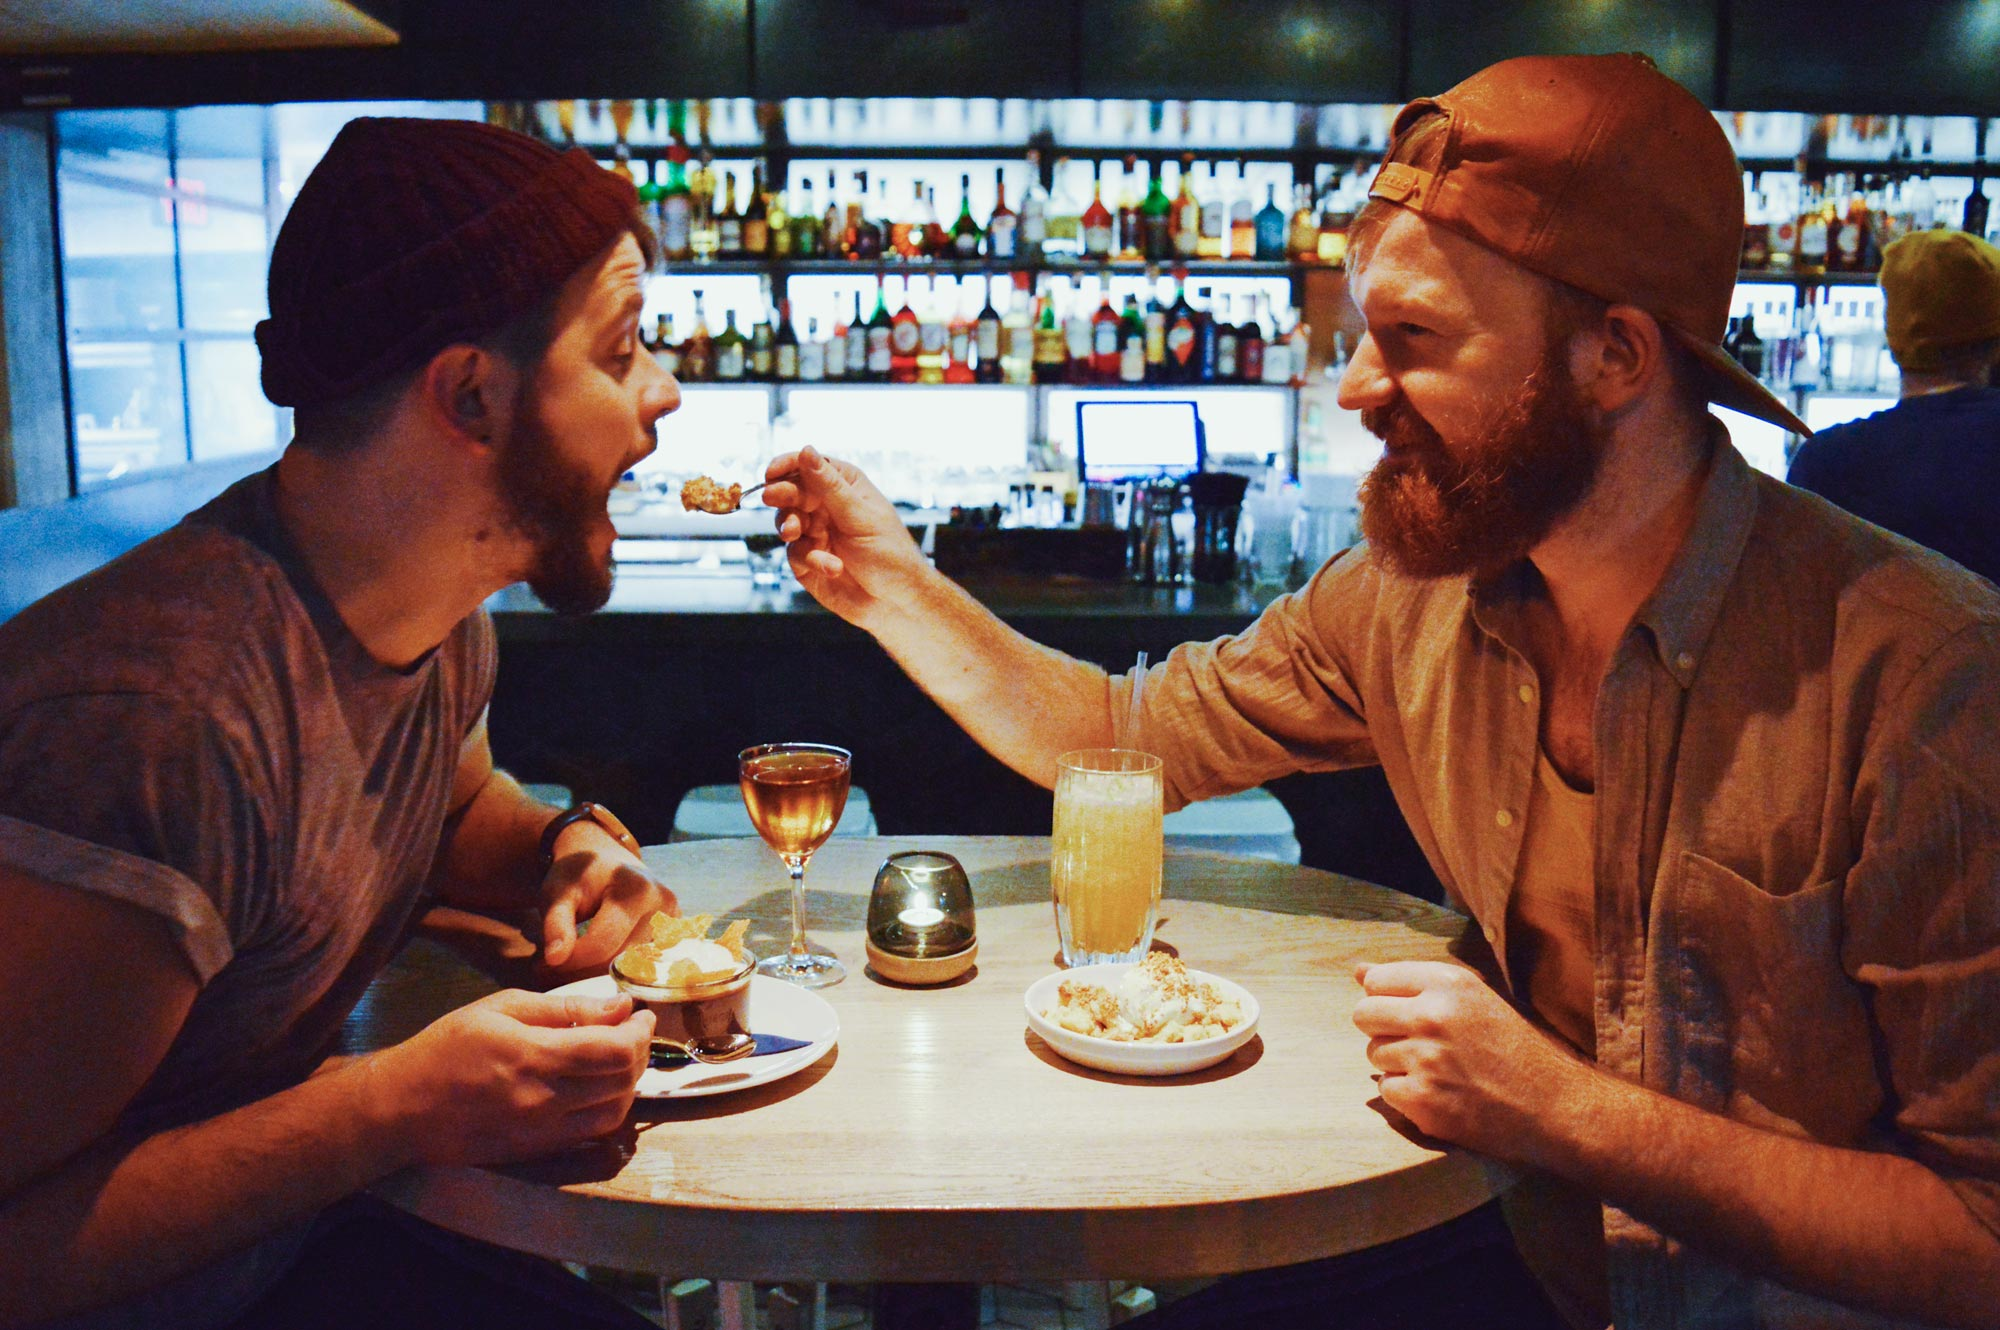 10 Best Gay-friendly Restaurants in Vancouver Schwulenfreundliche Restaurants Vancouver Top 10 awesome & gay-friendly Restaurants Vancouver, BC © CoupleofMen.com